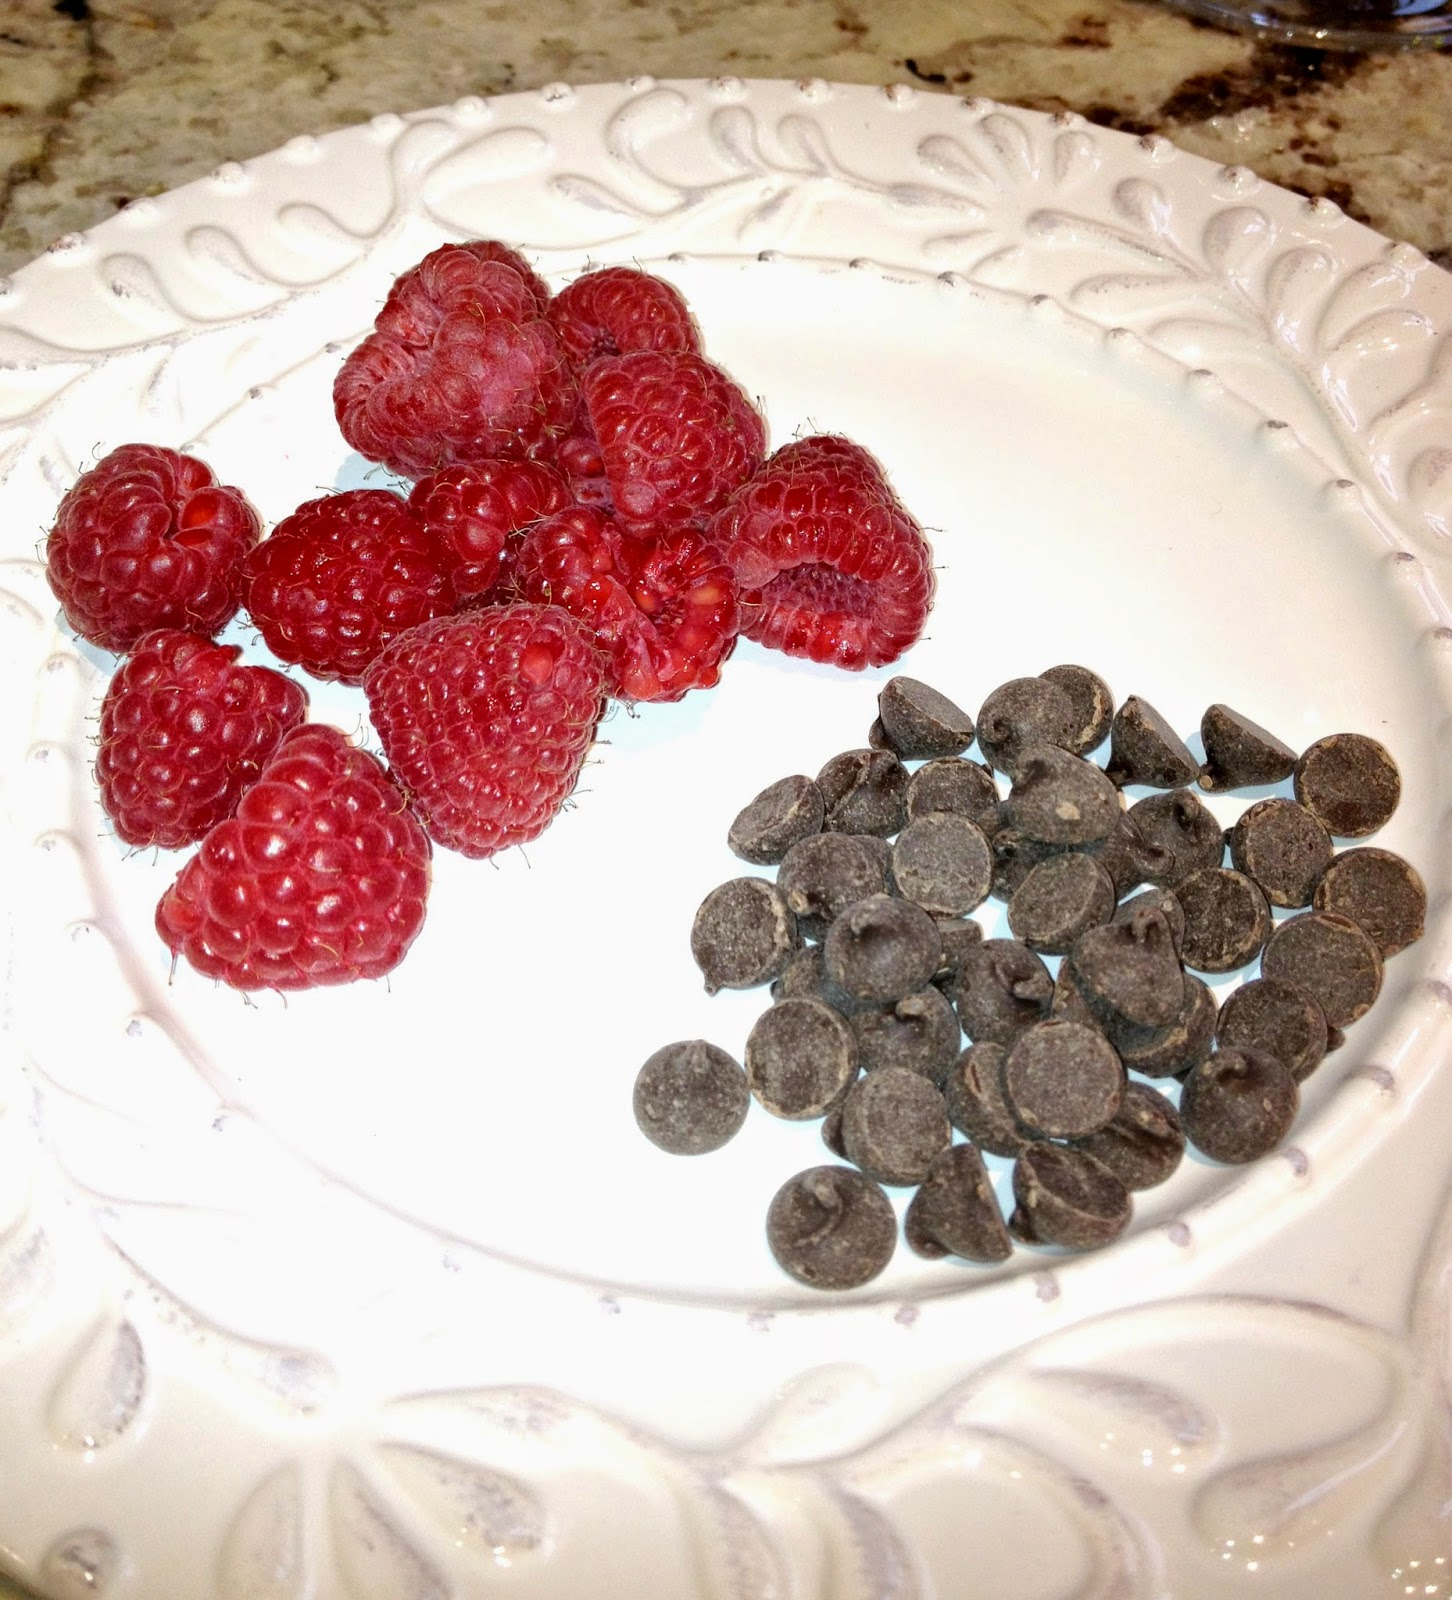 plate of red raspberries and dairy free chocolate chips